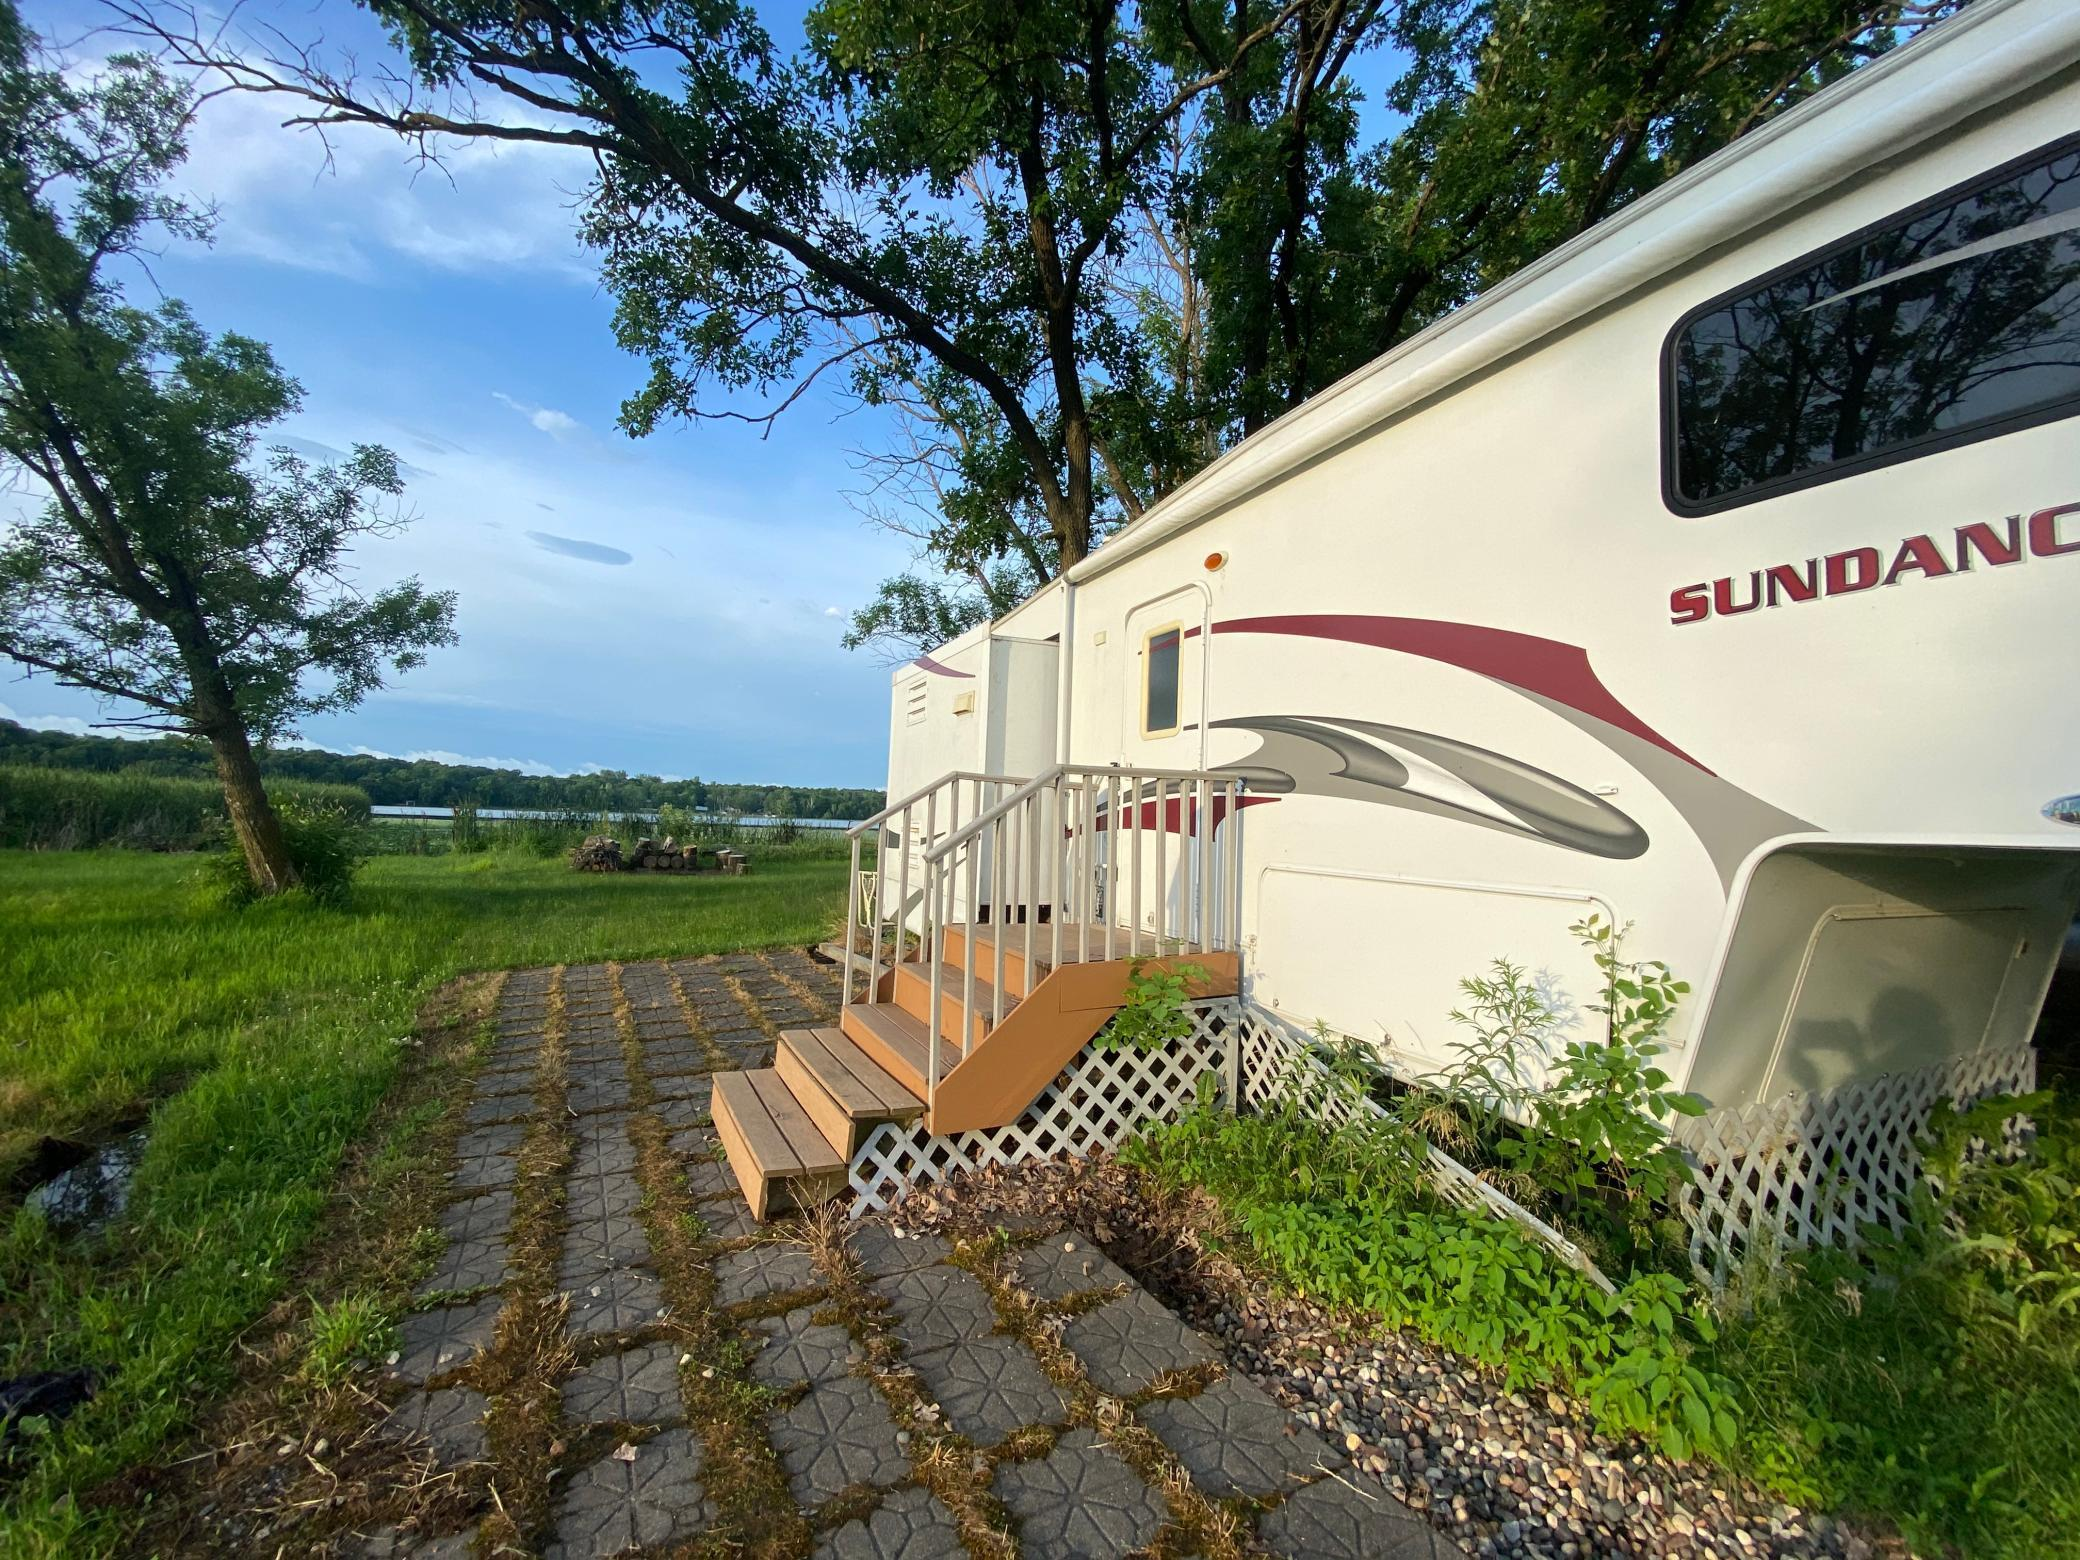 Excellent opportunity to own affordable lake place with no association. Lot located just one hour from the metro. Included in sale: well, septic, dock, and 5th wheel travel trailer.